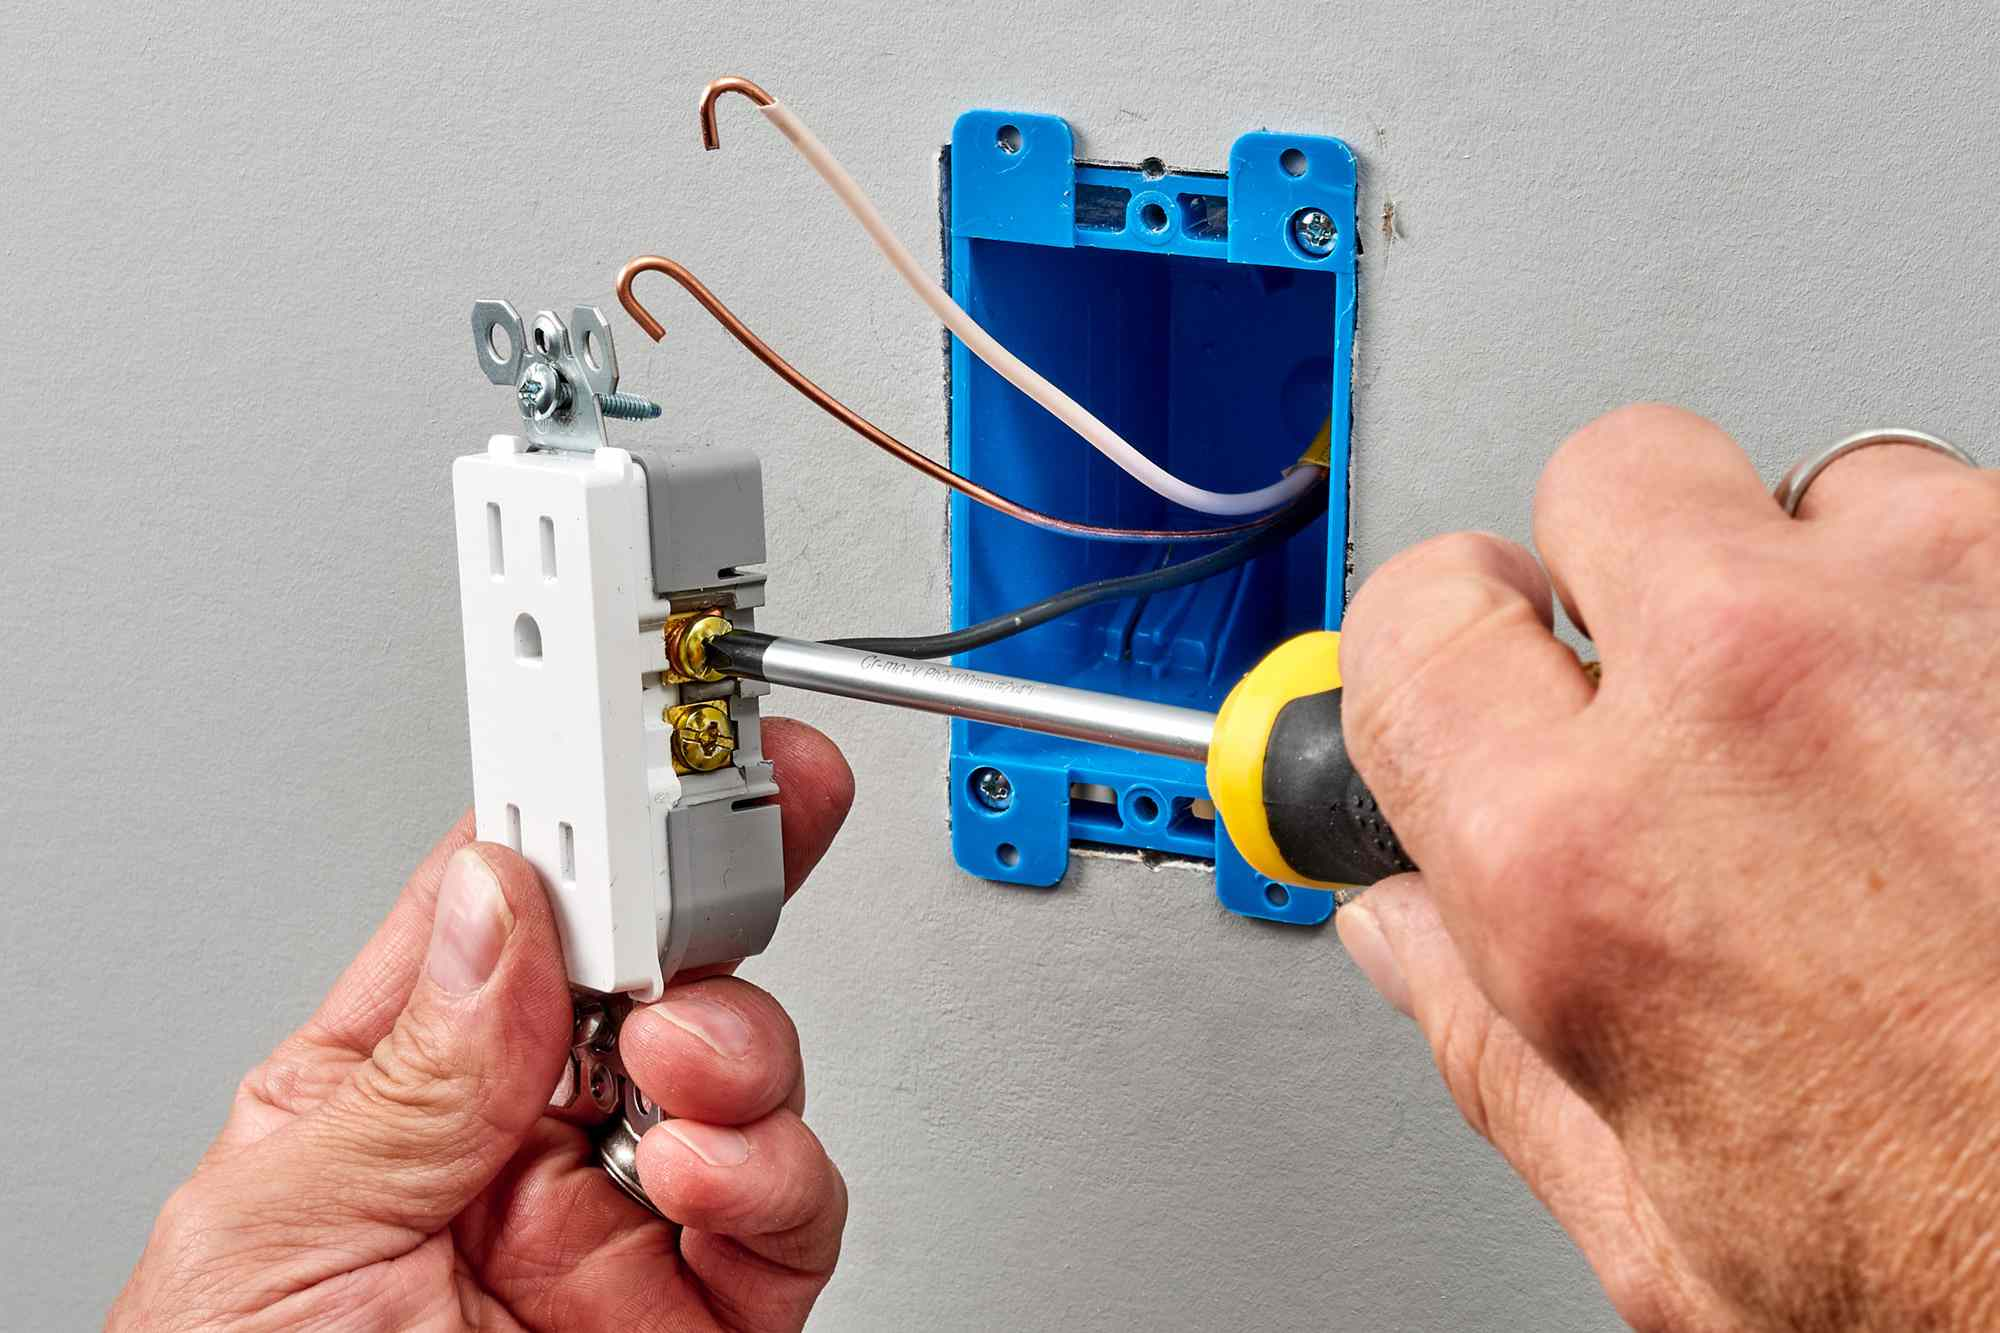 Phillips screwdriver tightening screw to secure wire